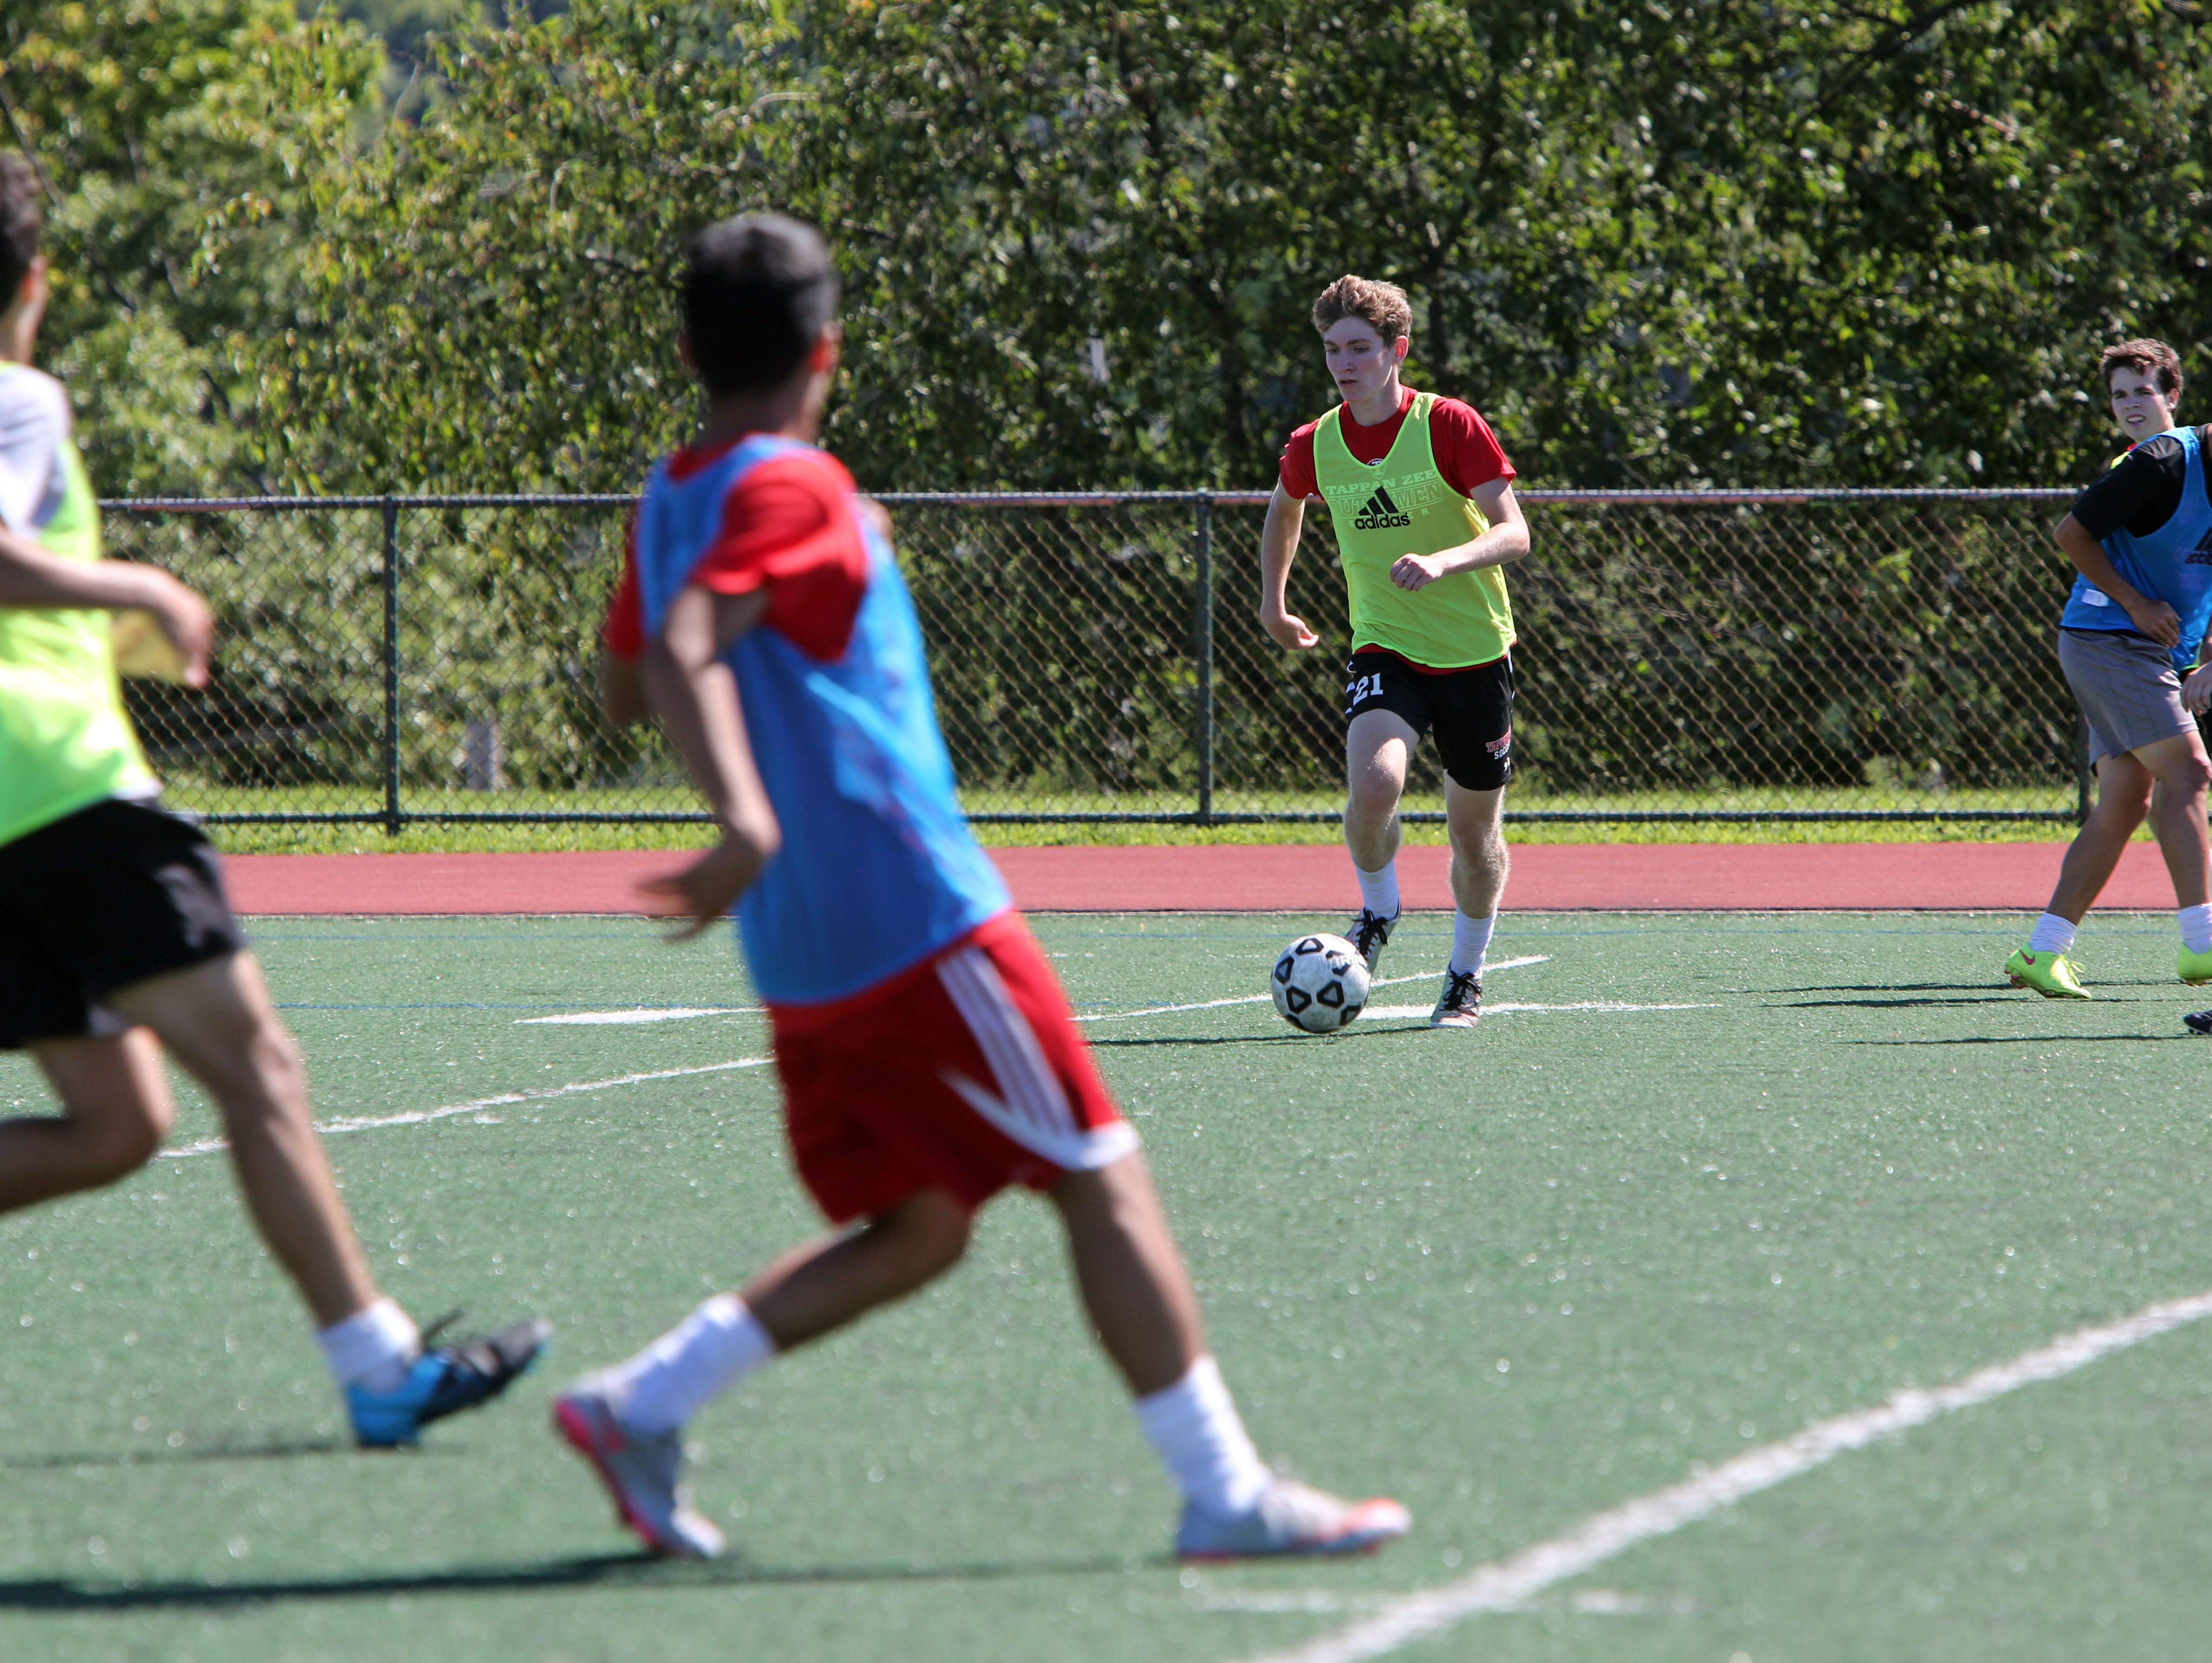 Tappan Zee senior Jack Samett during the first day of soccer practice at Tappan Zee High School Aug. 22, 2016.